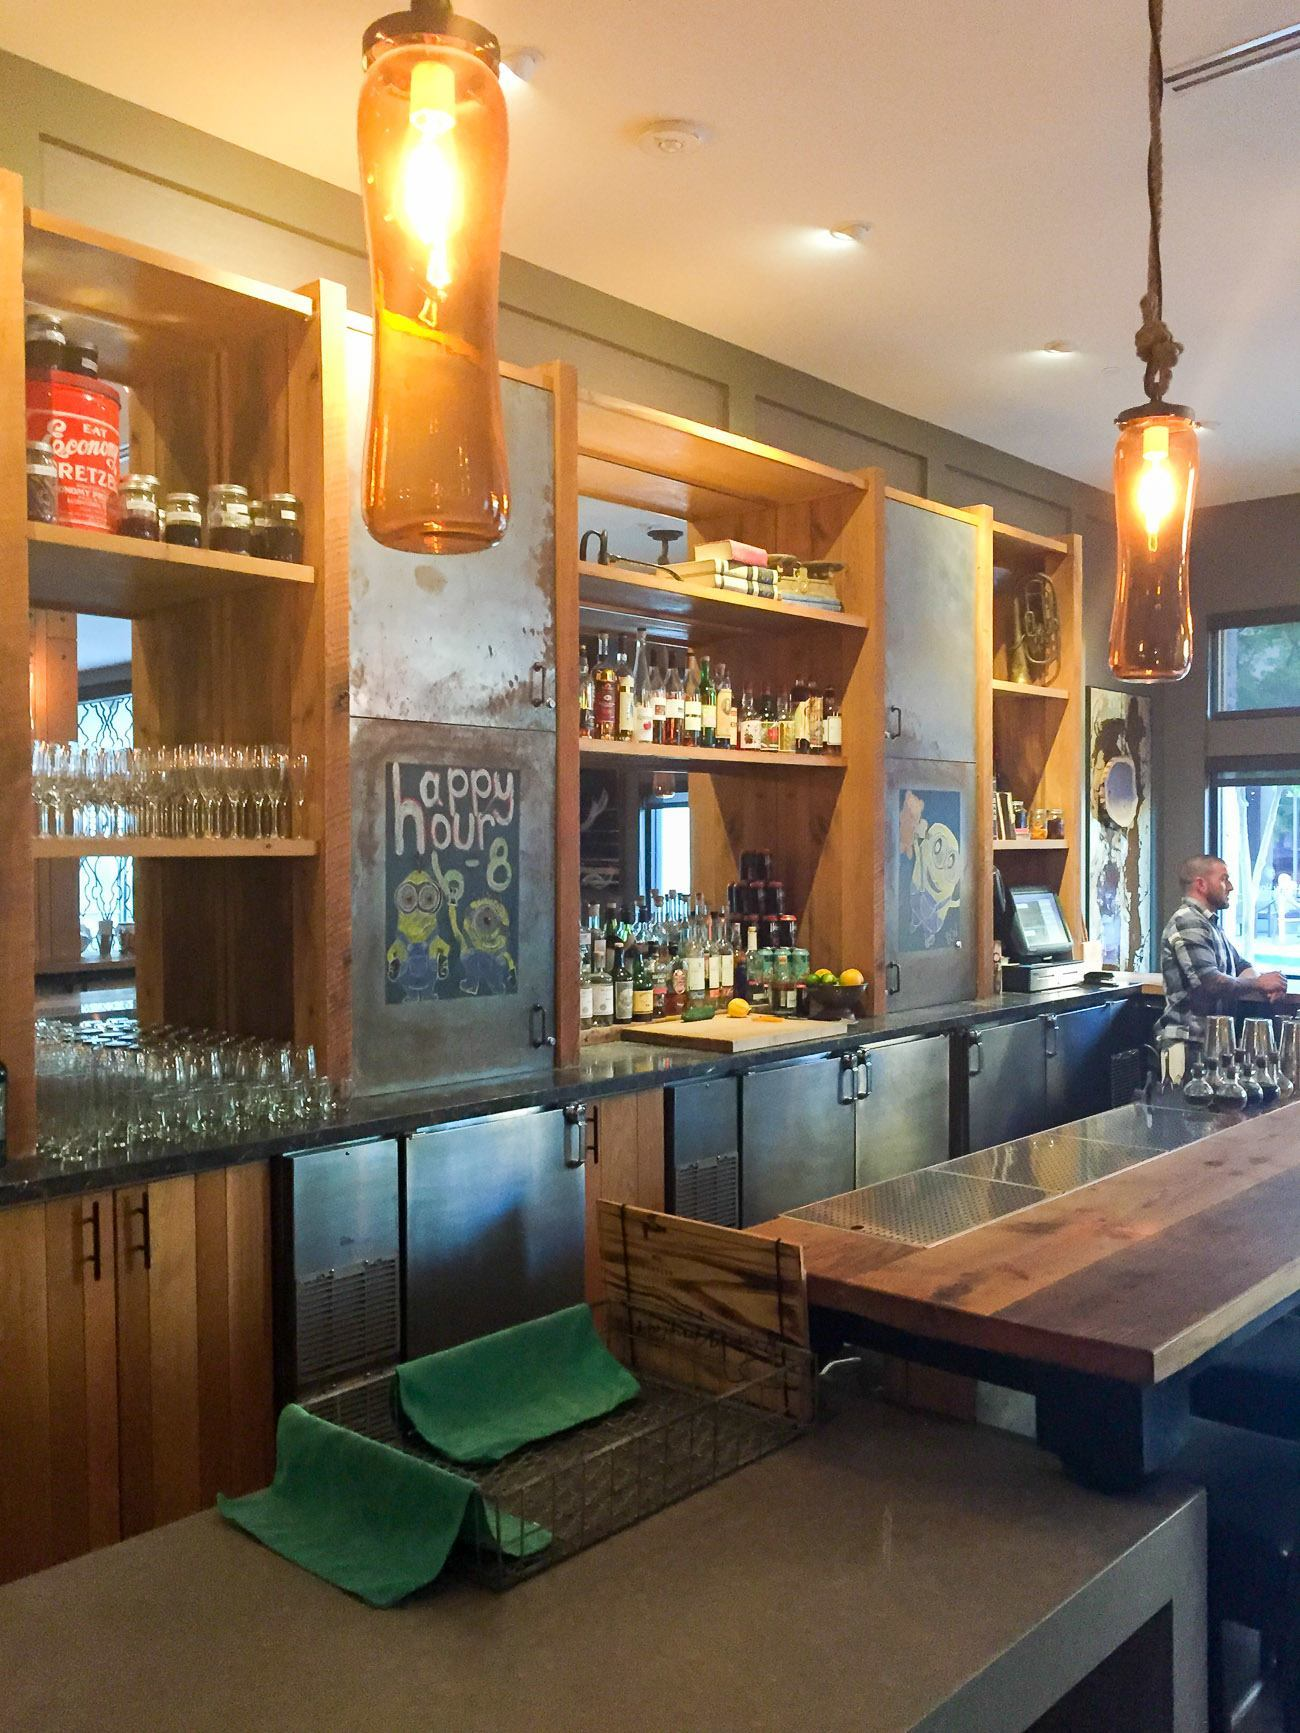 The Andaz Napa in the downtown area has a cool rustic vibe in the lobby and bar area.